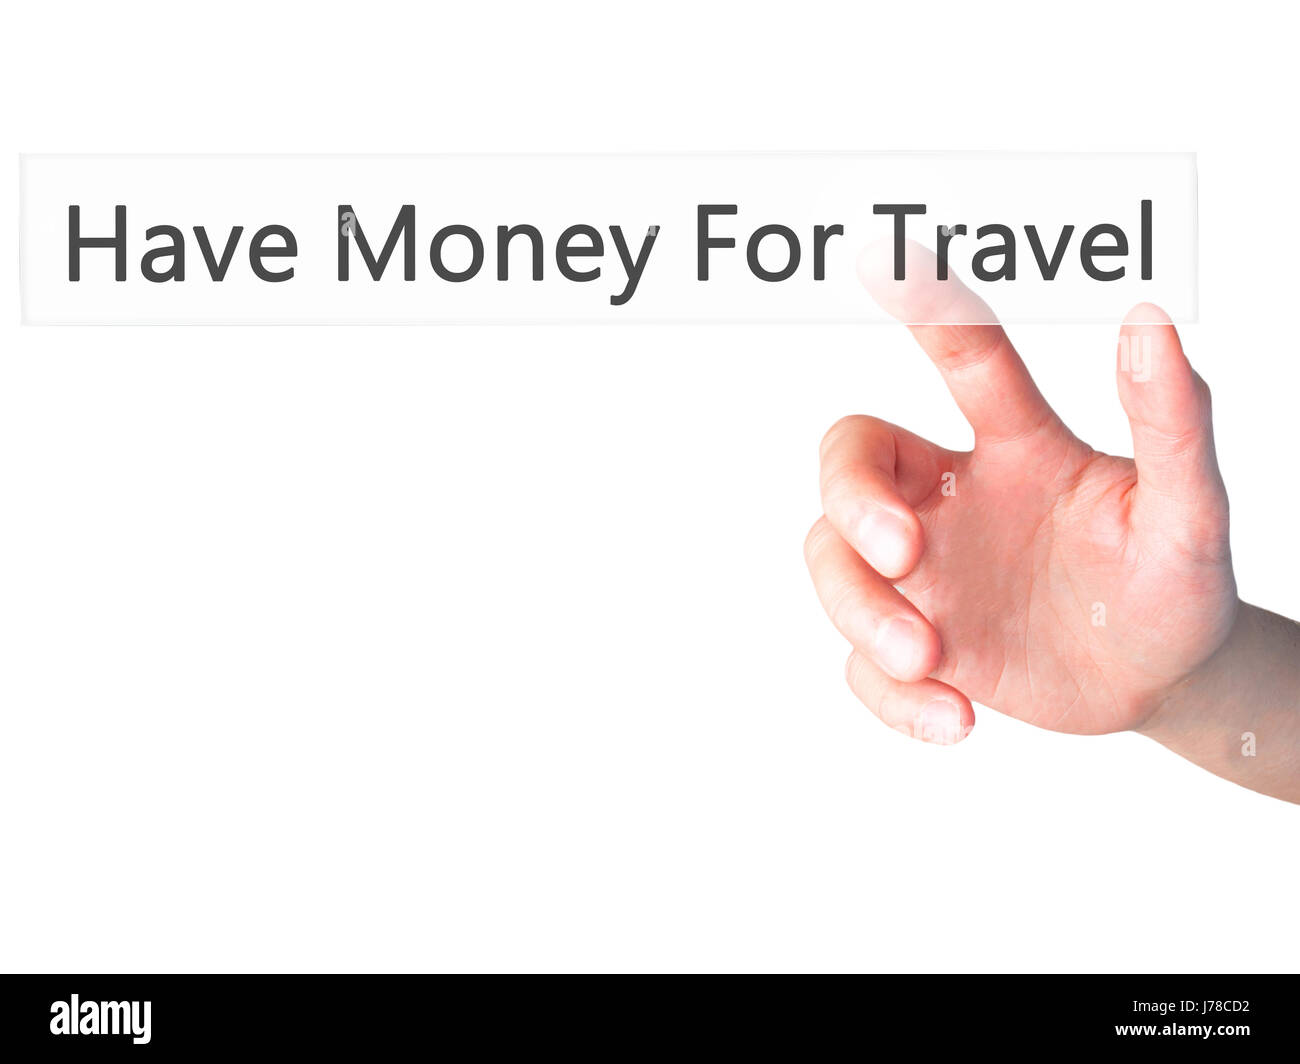 Have Money For Travel - Hand pressing a button on blurred background concept . Business, technology, internet concept. - Stock Image